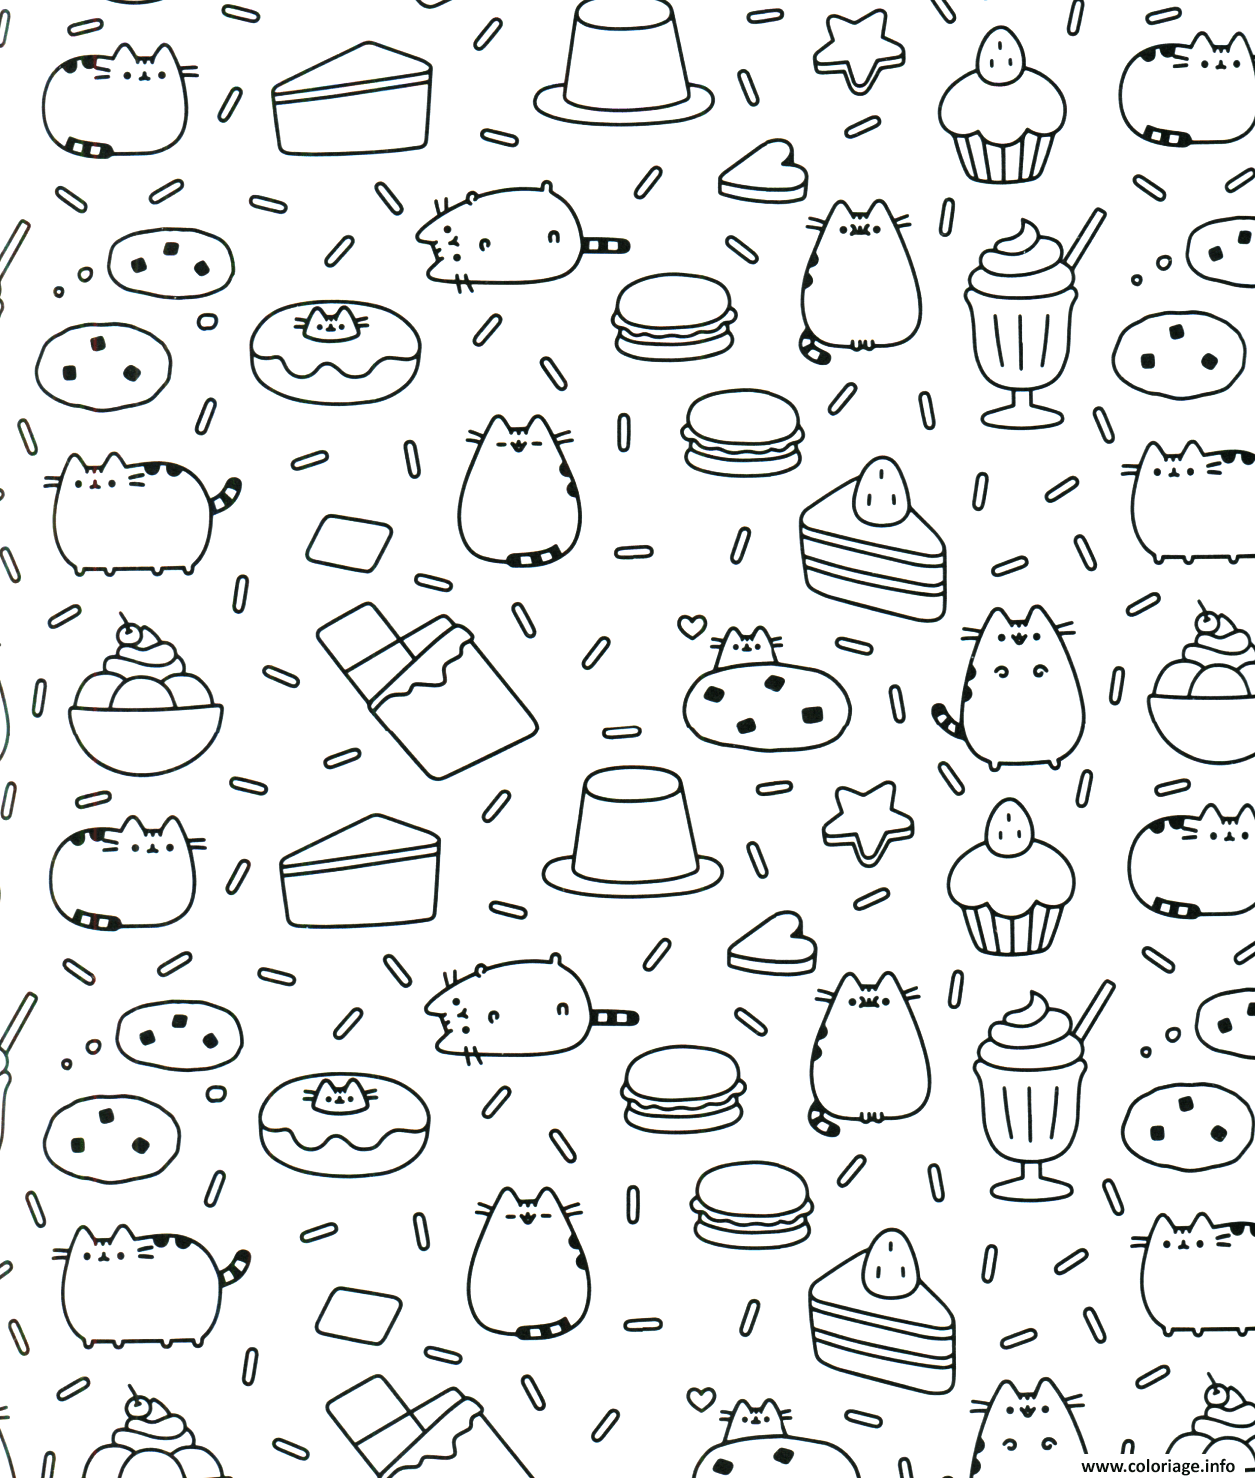 Coloriage Pusheen The Cat Therapy For Adults Dessin à Imprimer